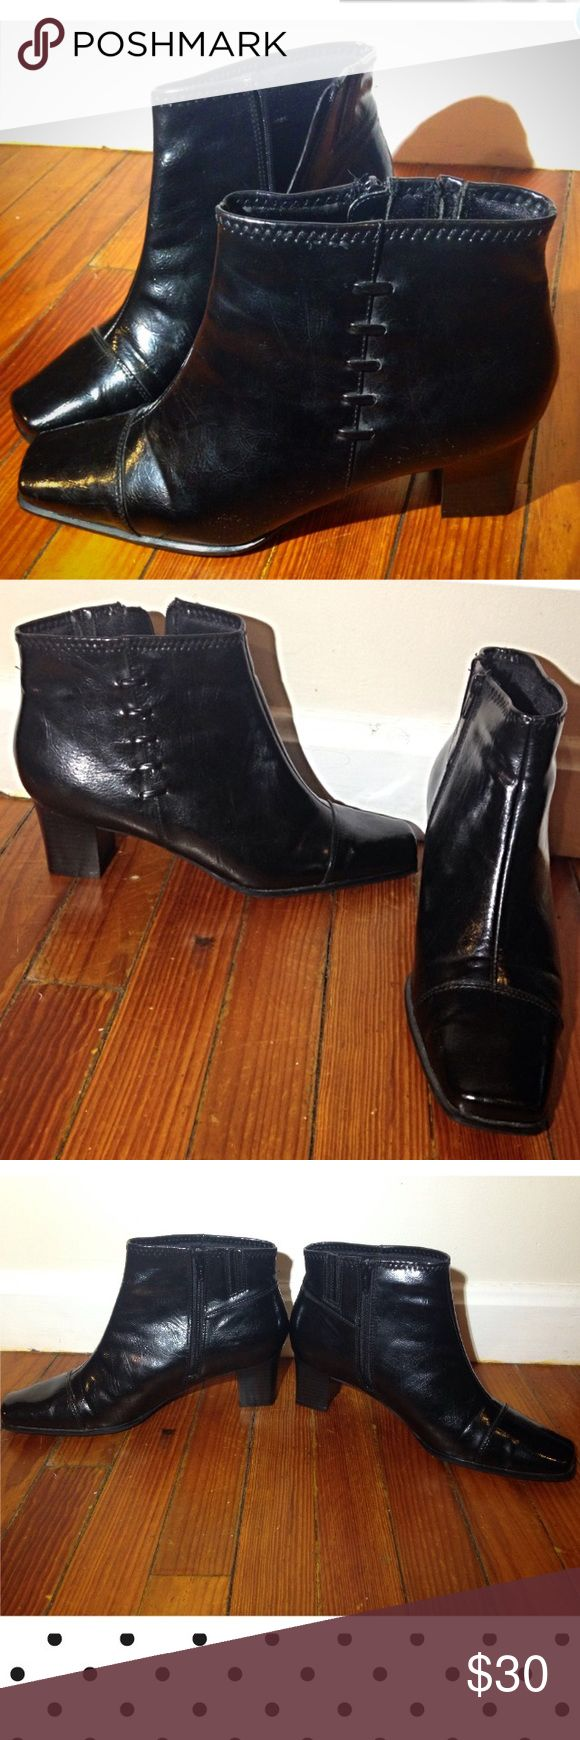 ❤3 HOUR SALE ️Size 9 Black Ankle Boots Heeled Excellent condition❤️ Size 9 Black Heeled Ankle Boots by Life Stride great for spring summer! Work, parties, formal and informal events, casual wear, office attire, cocktail parties Life Stride Shoes Heeled Boots